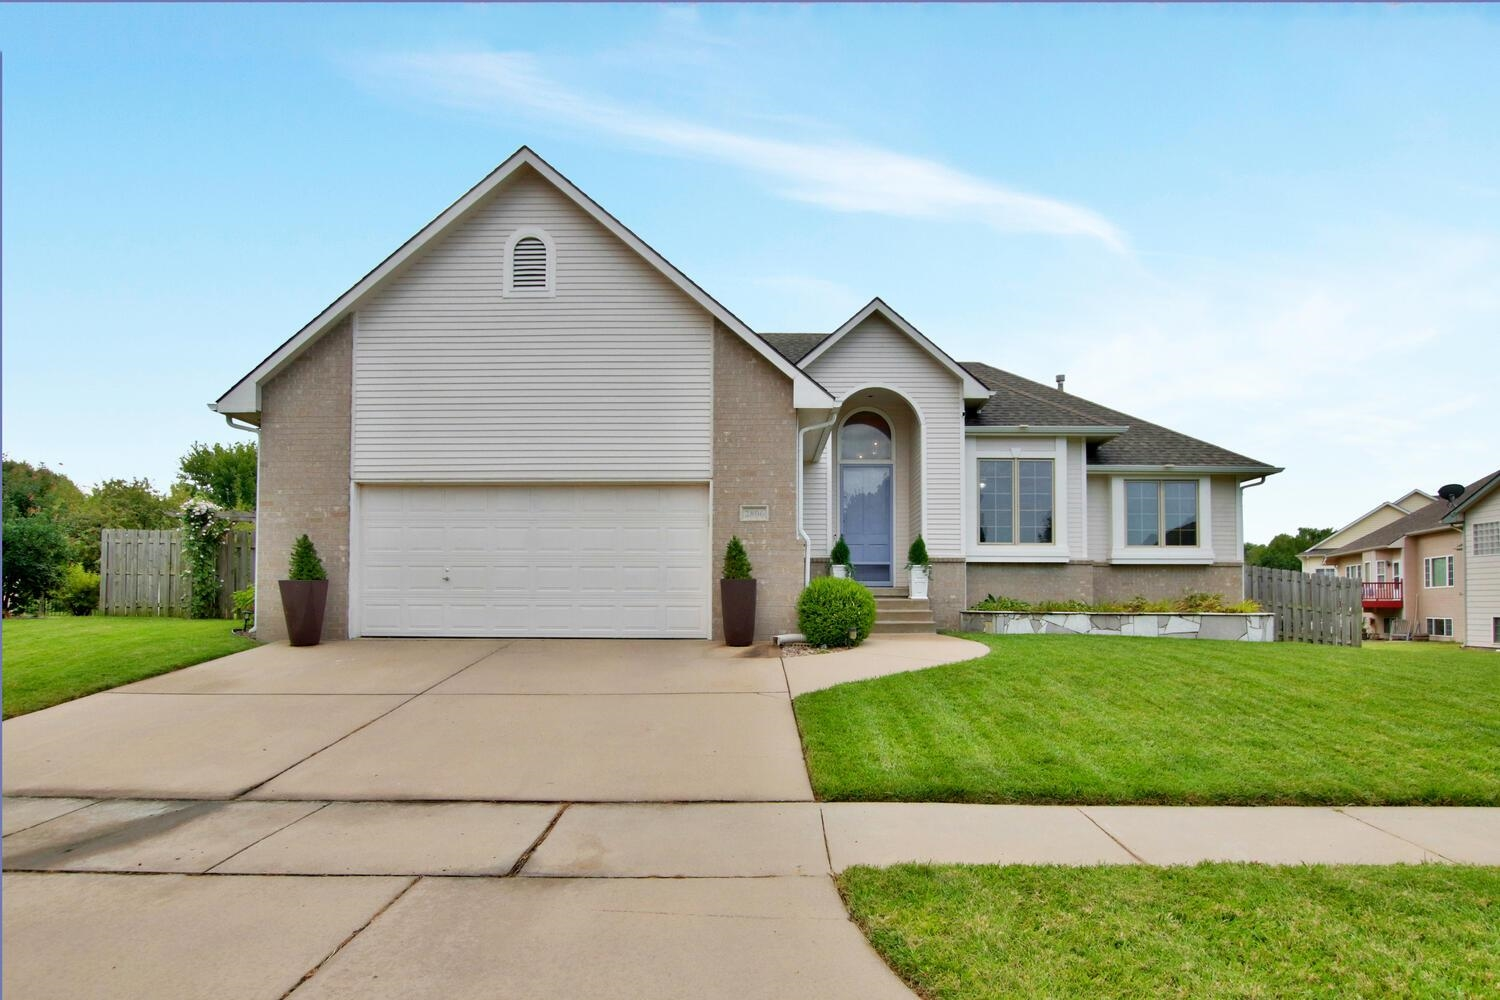 Nicely maintained and updated ranch on cul-de-sac lot in The Courts.  Three car tandem garage.  Spac